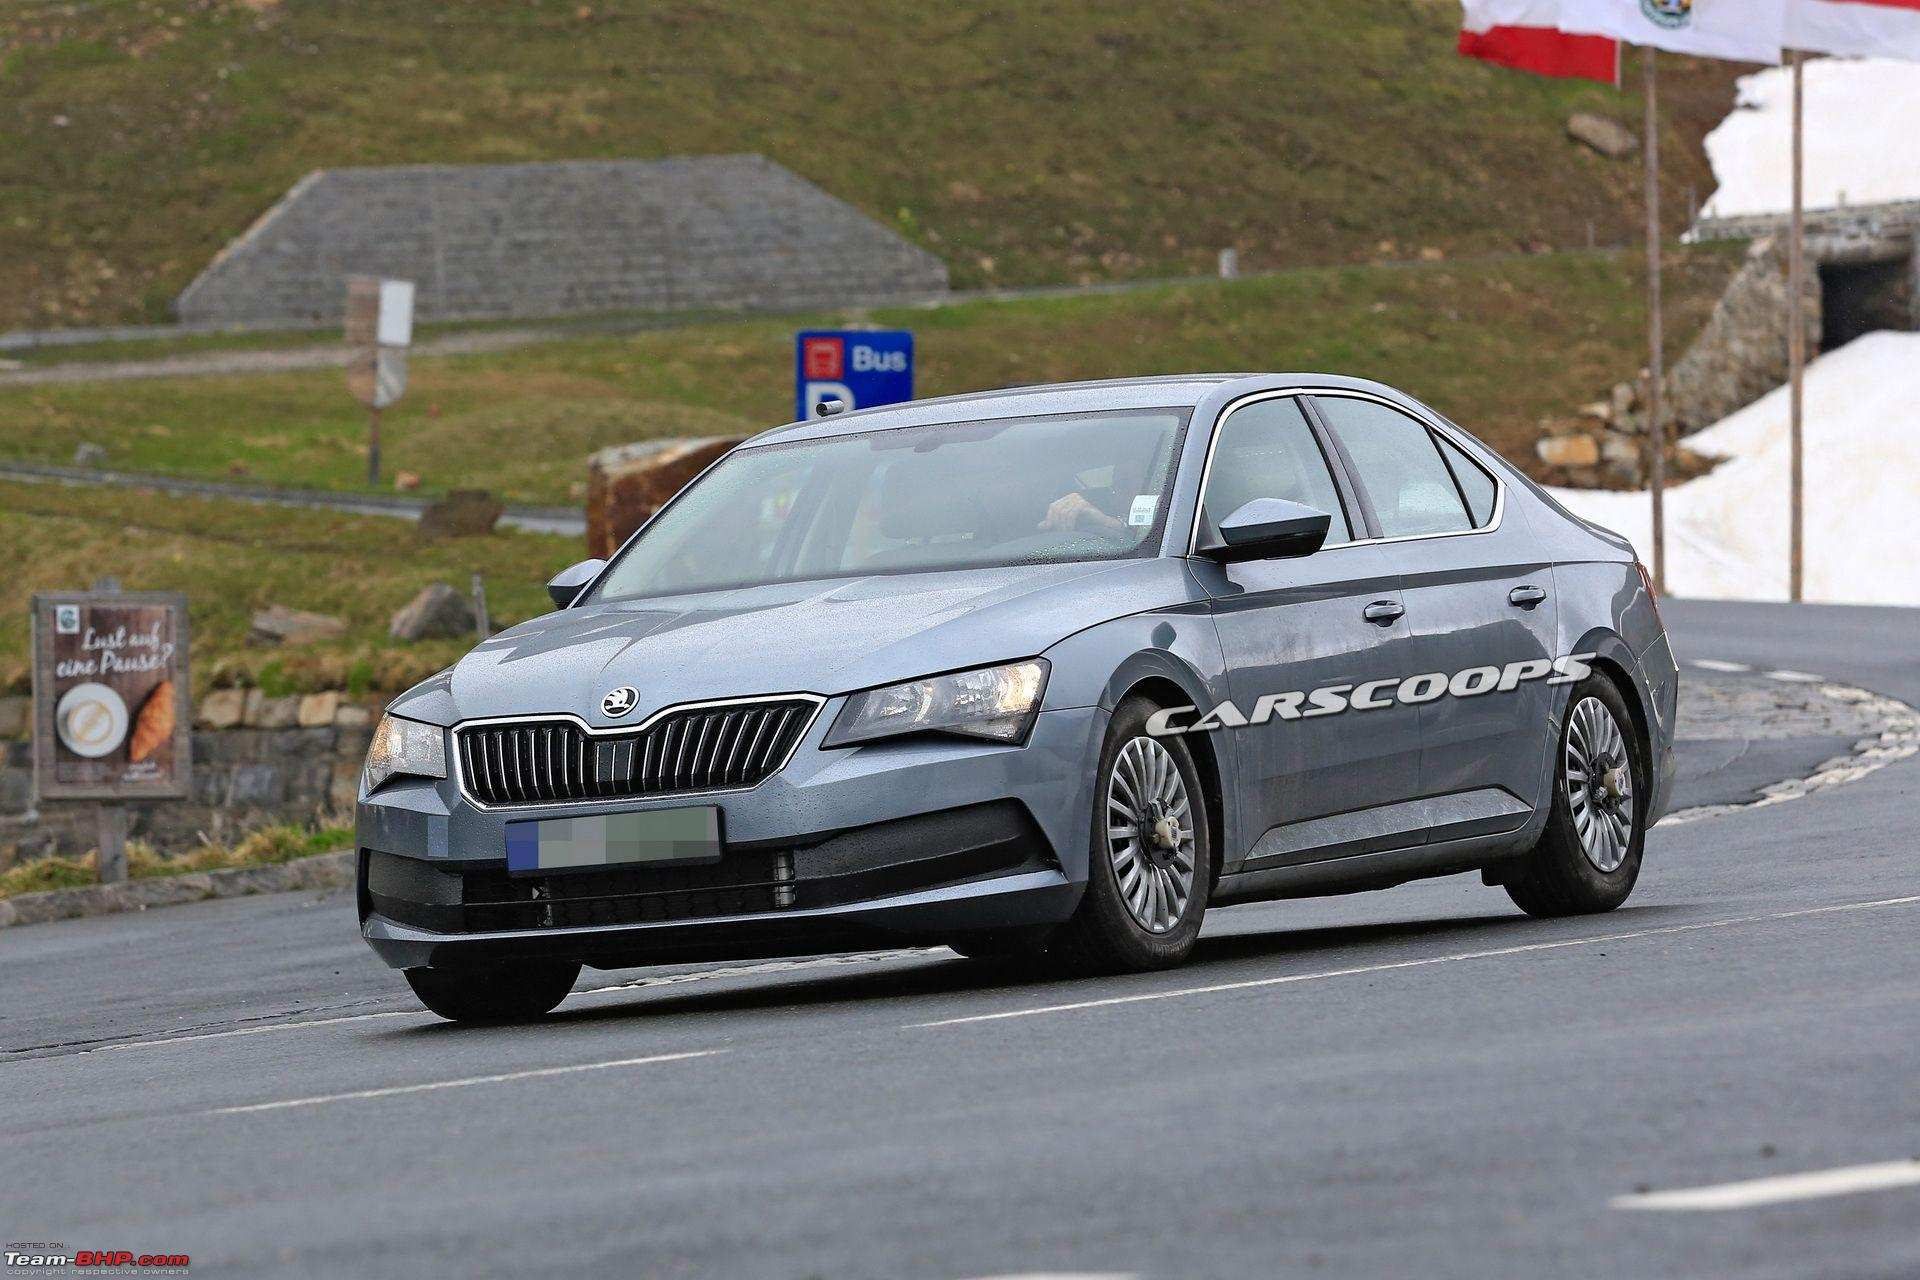 86 A Spy Shots Skoda Superb Engine